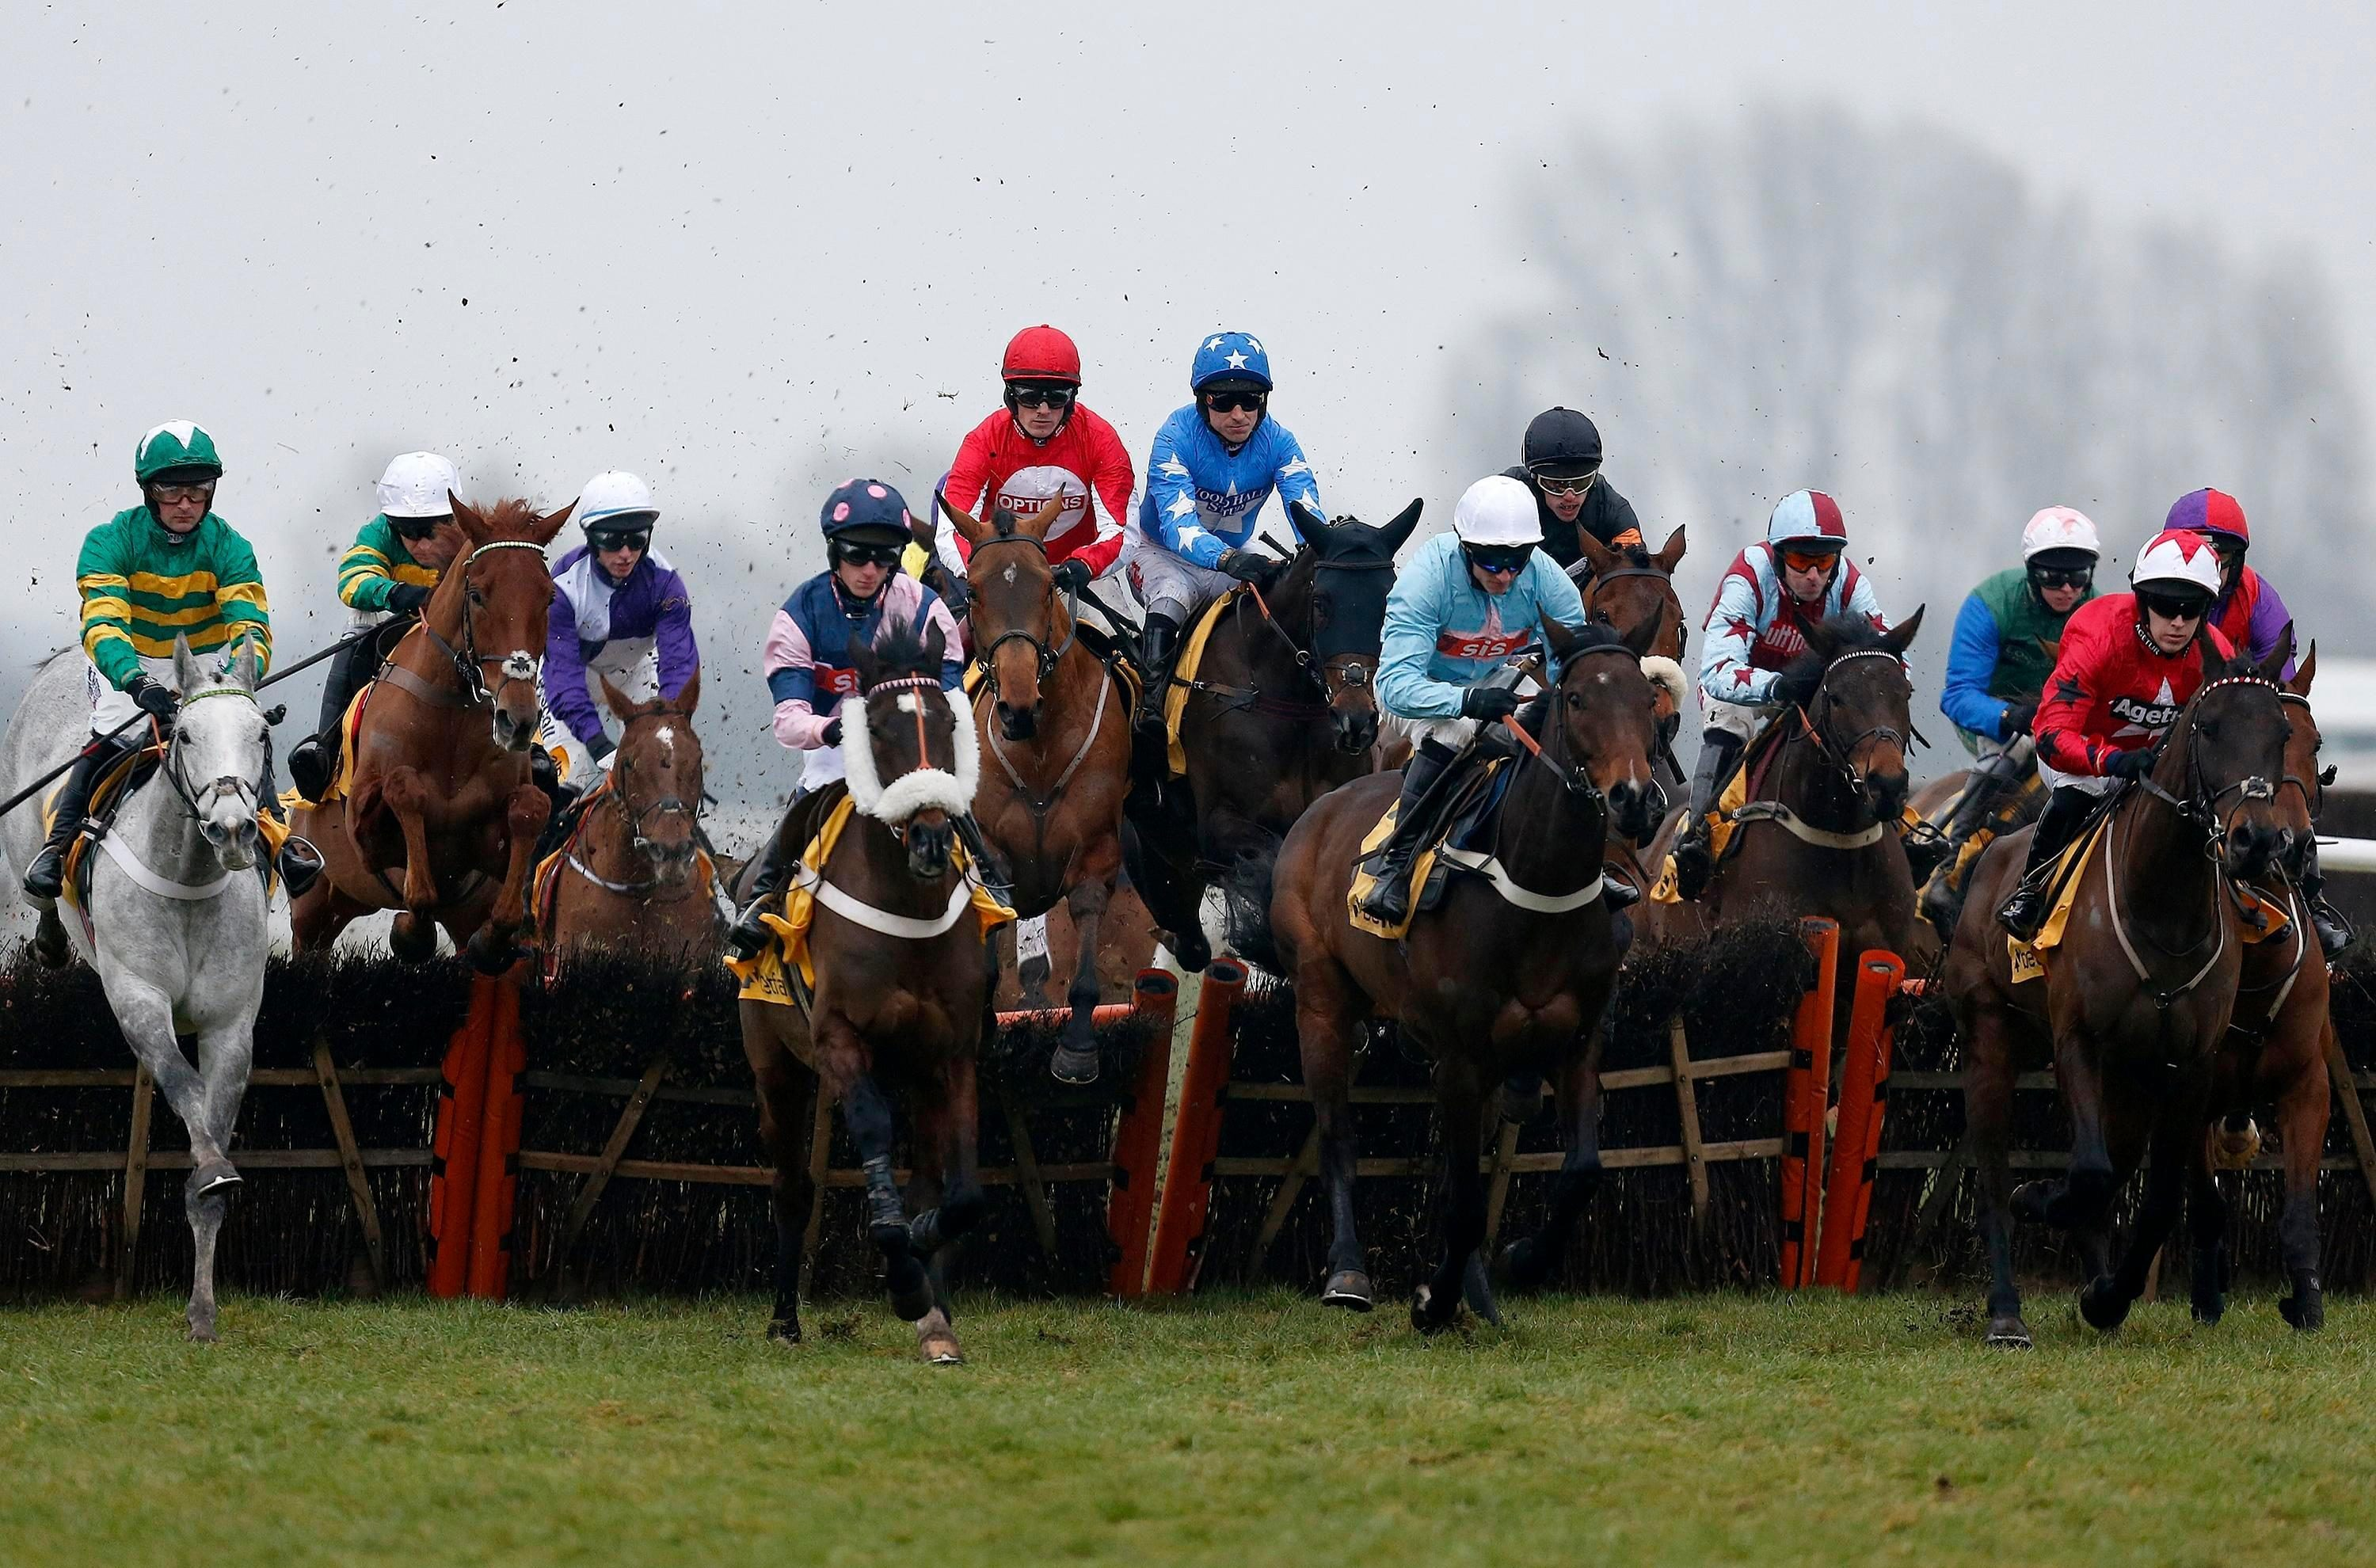 Horse racing tips: Southwell, Wincanton, Carlisle and Newcastle – Templegate's betting preview for the racing this Thursday, March 8